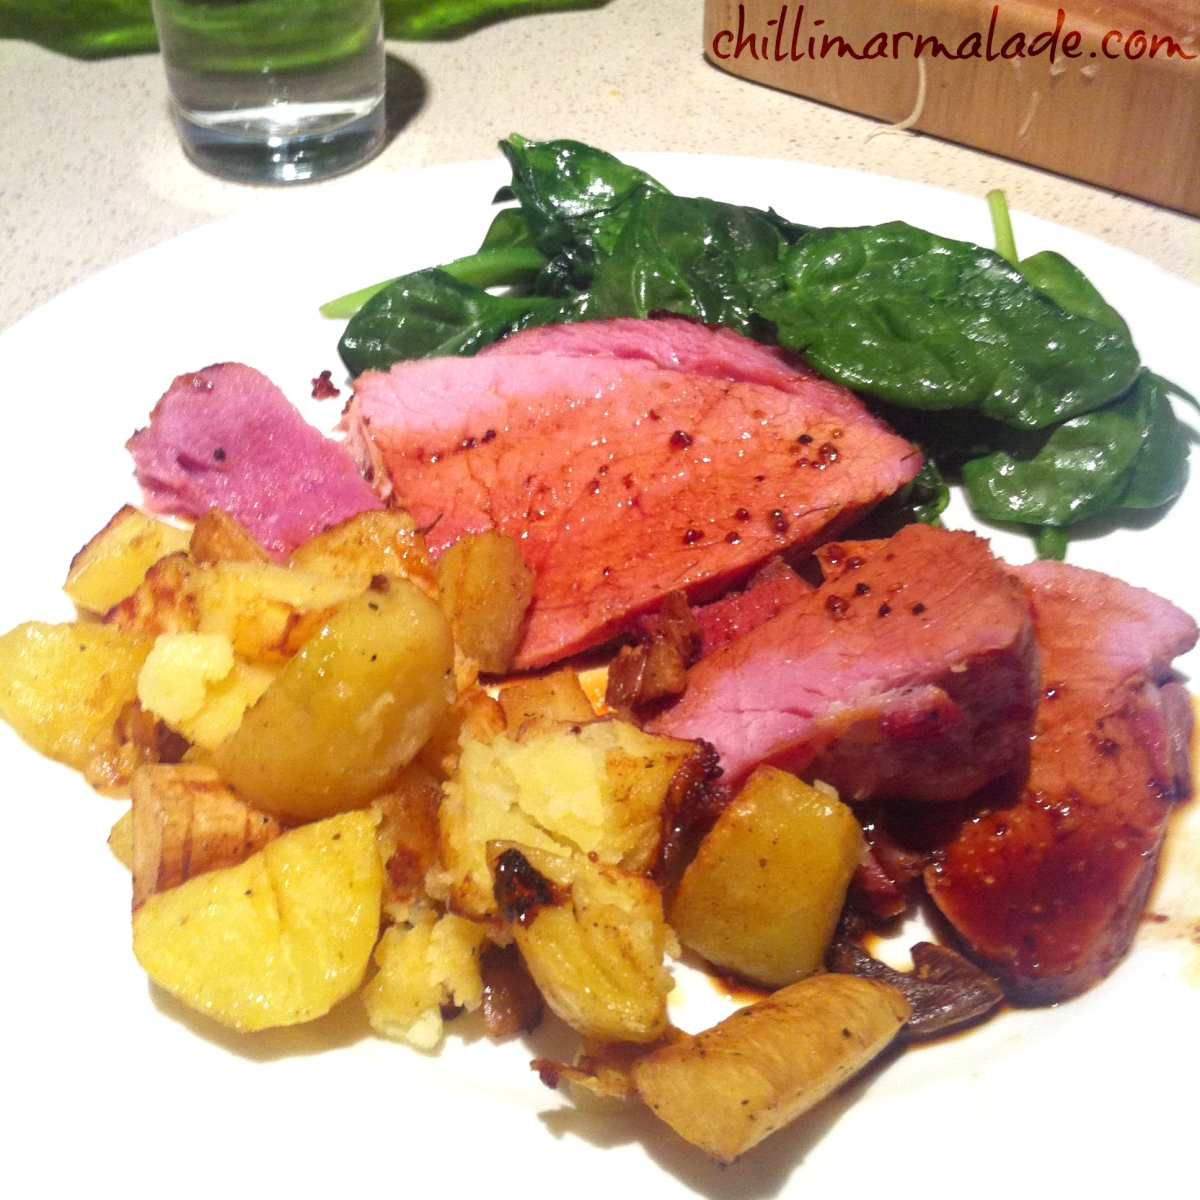 Mustard and golden syrup-glazed gammon ham